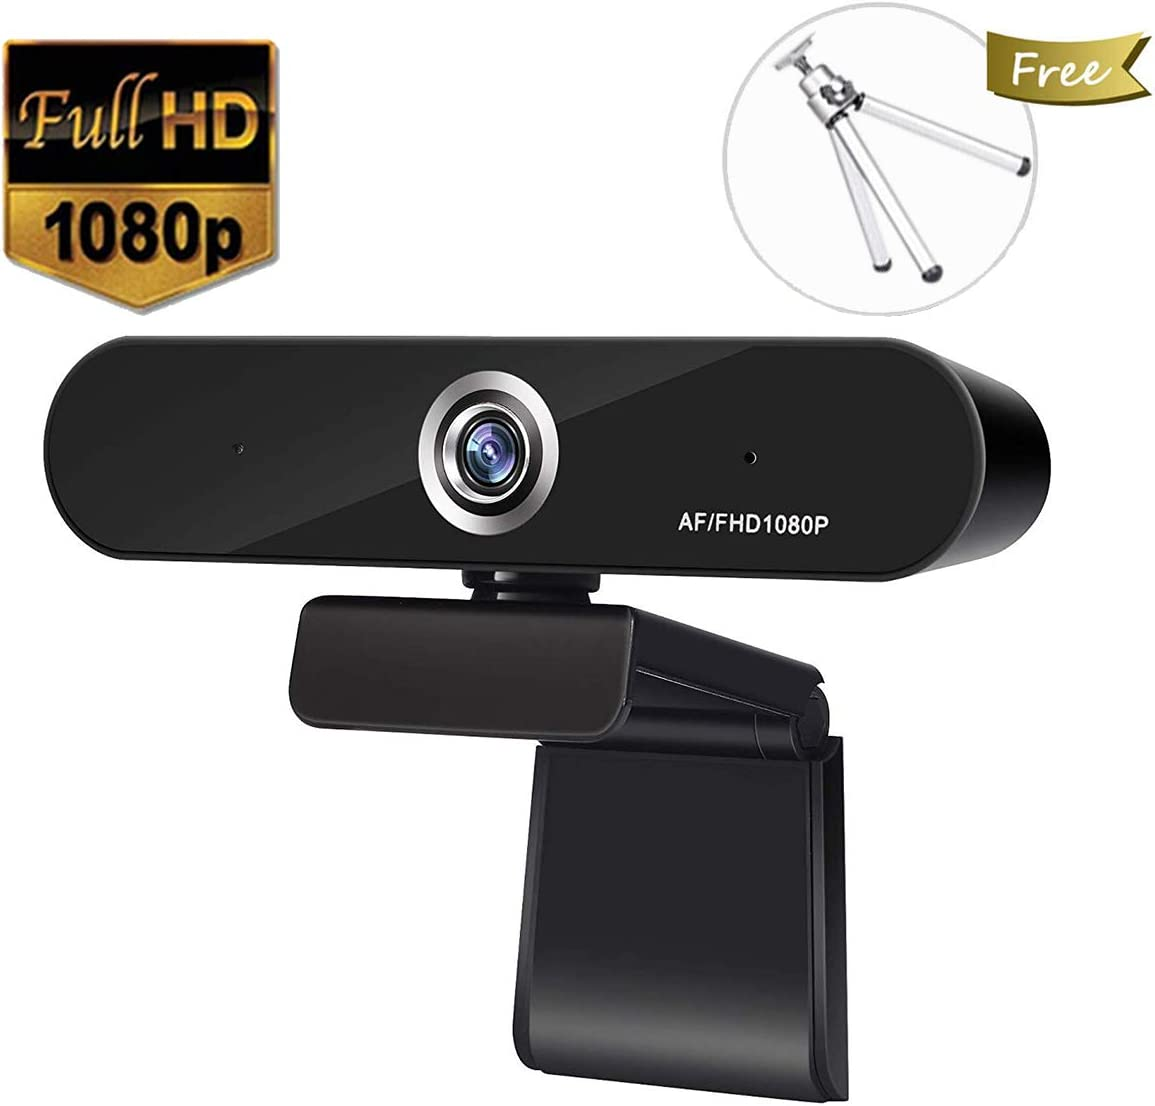 Full 1080P Webcam,Auto Focus Computer Camera, Face Cam with Dual Microphone for PC, Laptops and Desktop,90 Degree Extended View